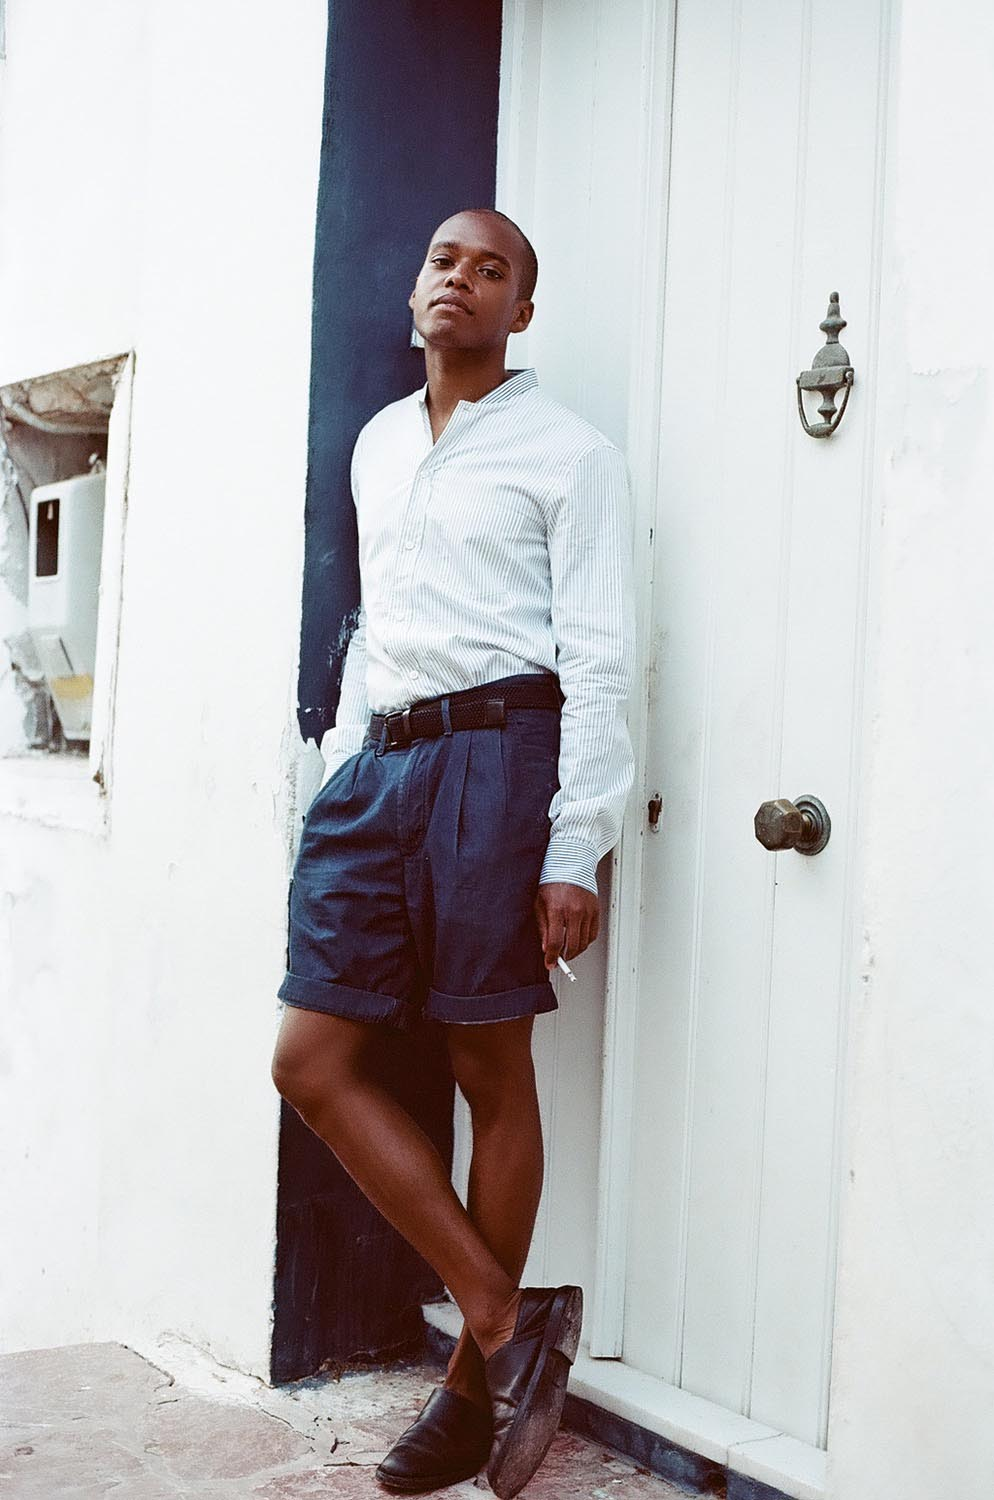 People fashion man smoking shorts